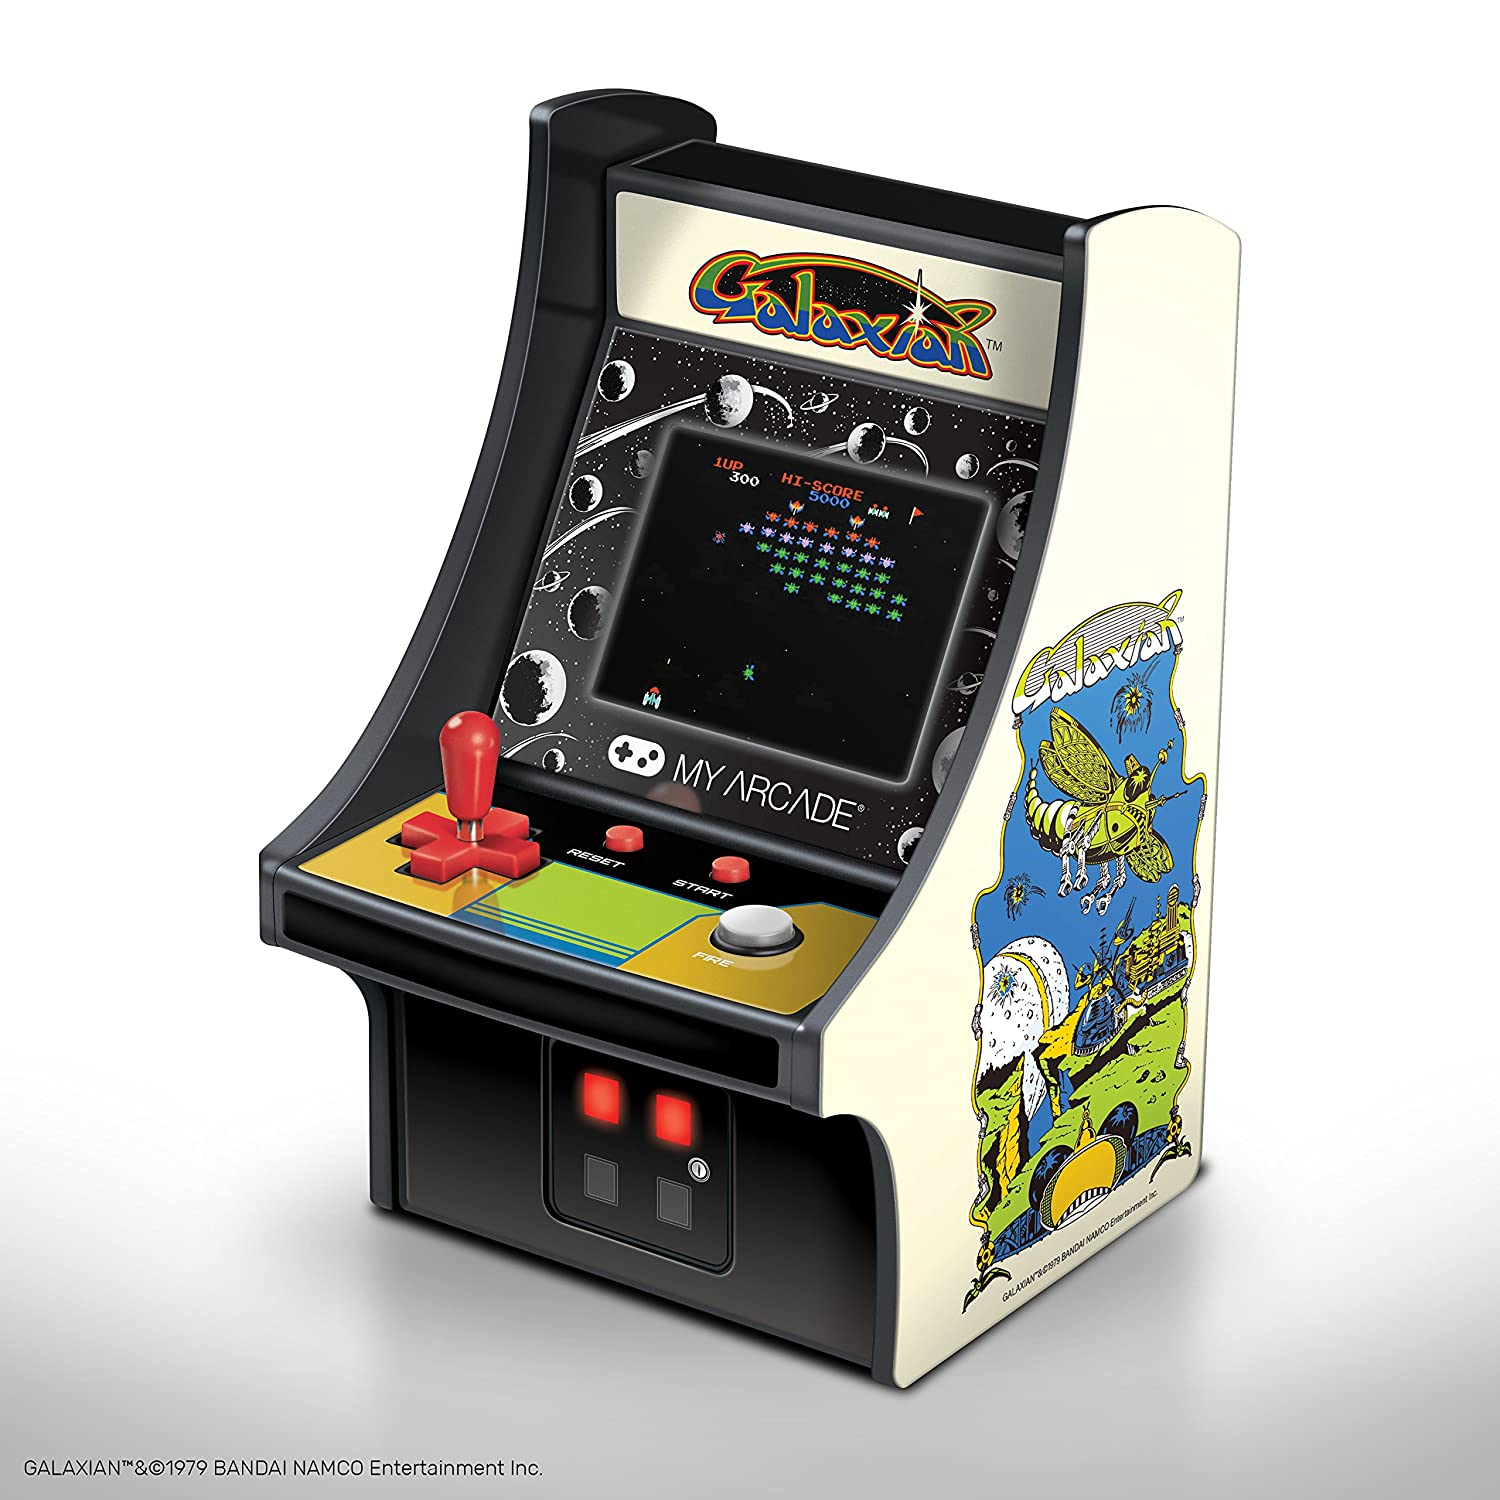 "My Arcade GALAXIAN Micro Player 6"" Collectable Arcade DGUNL-3223"